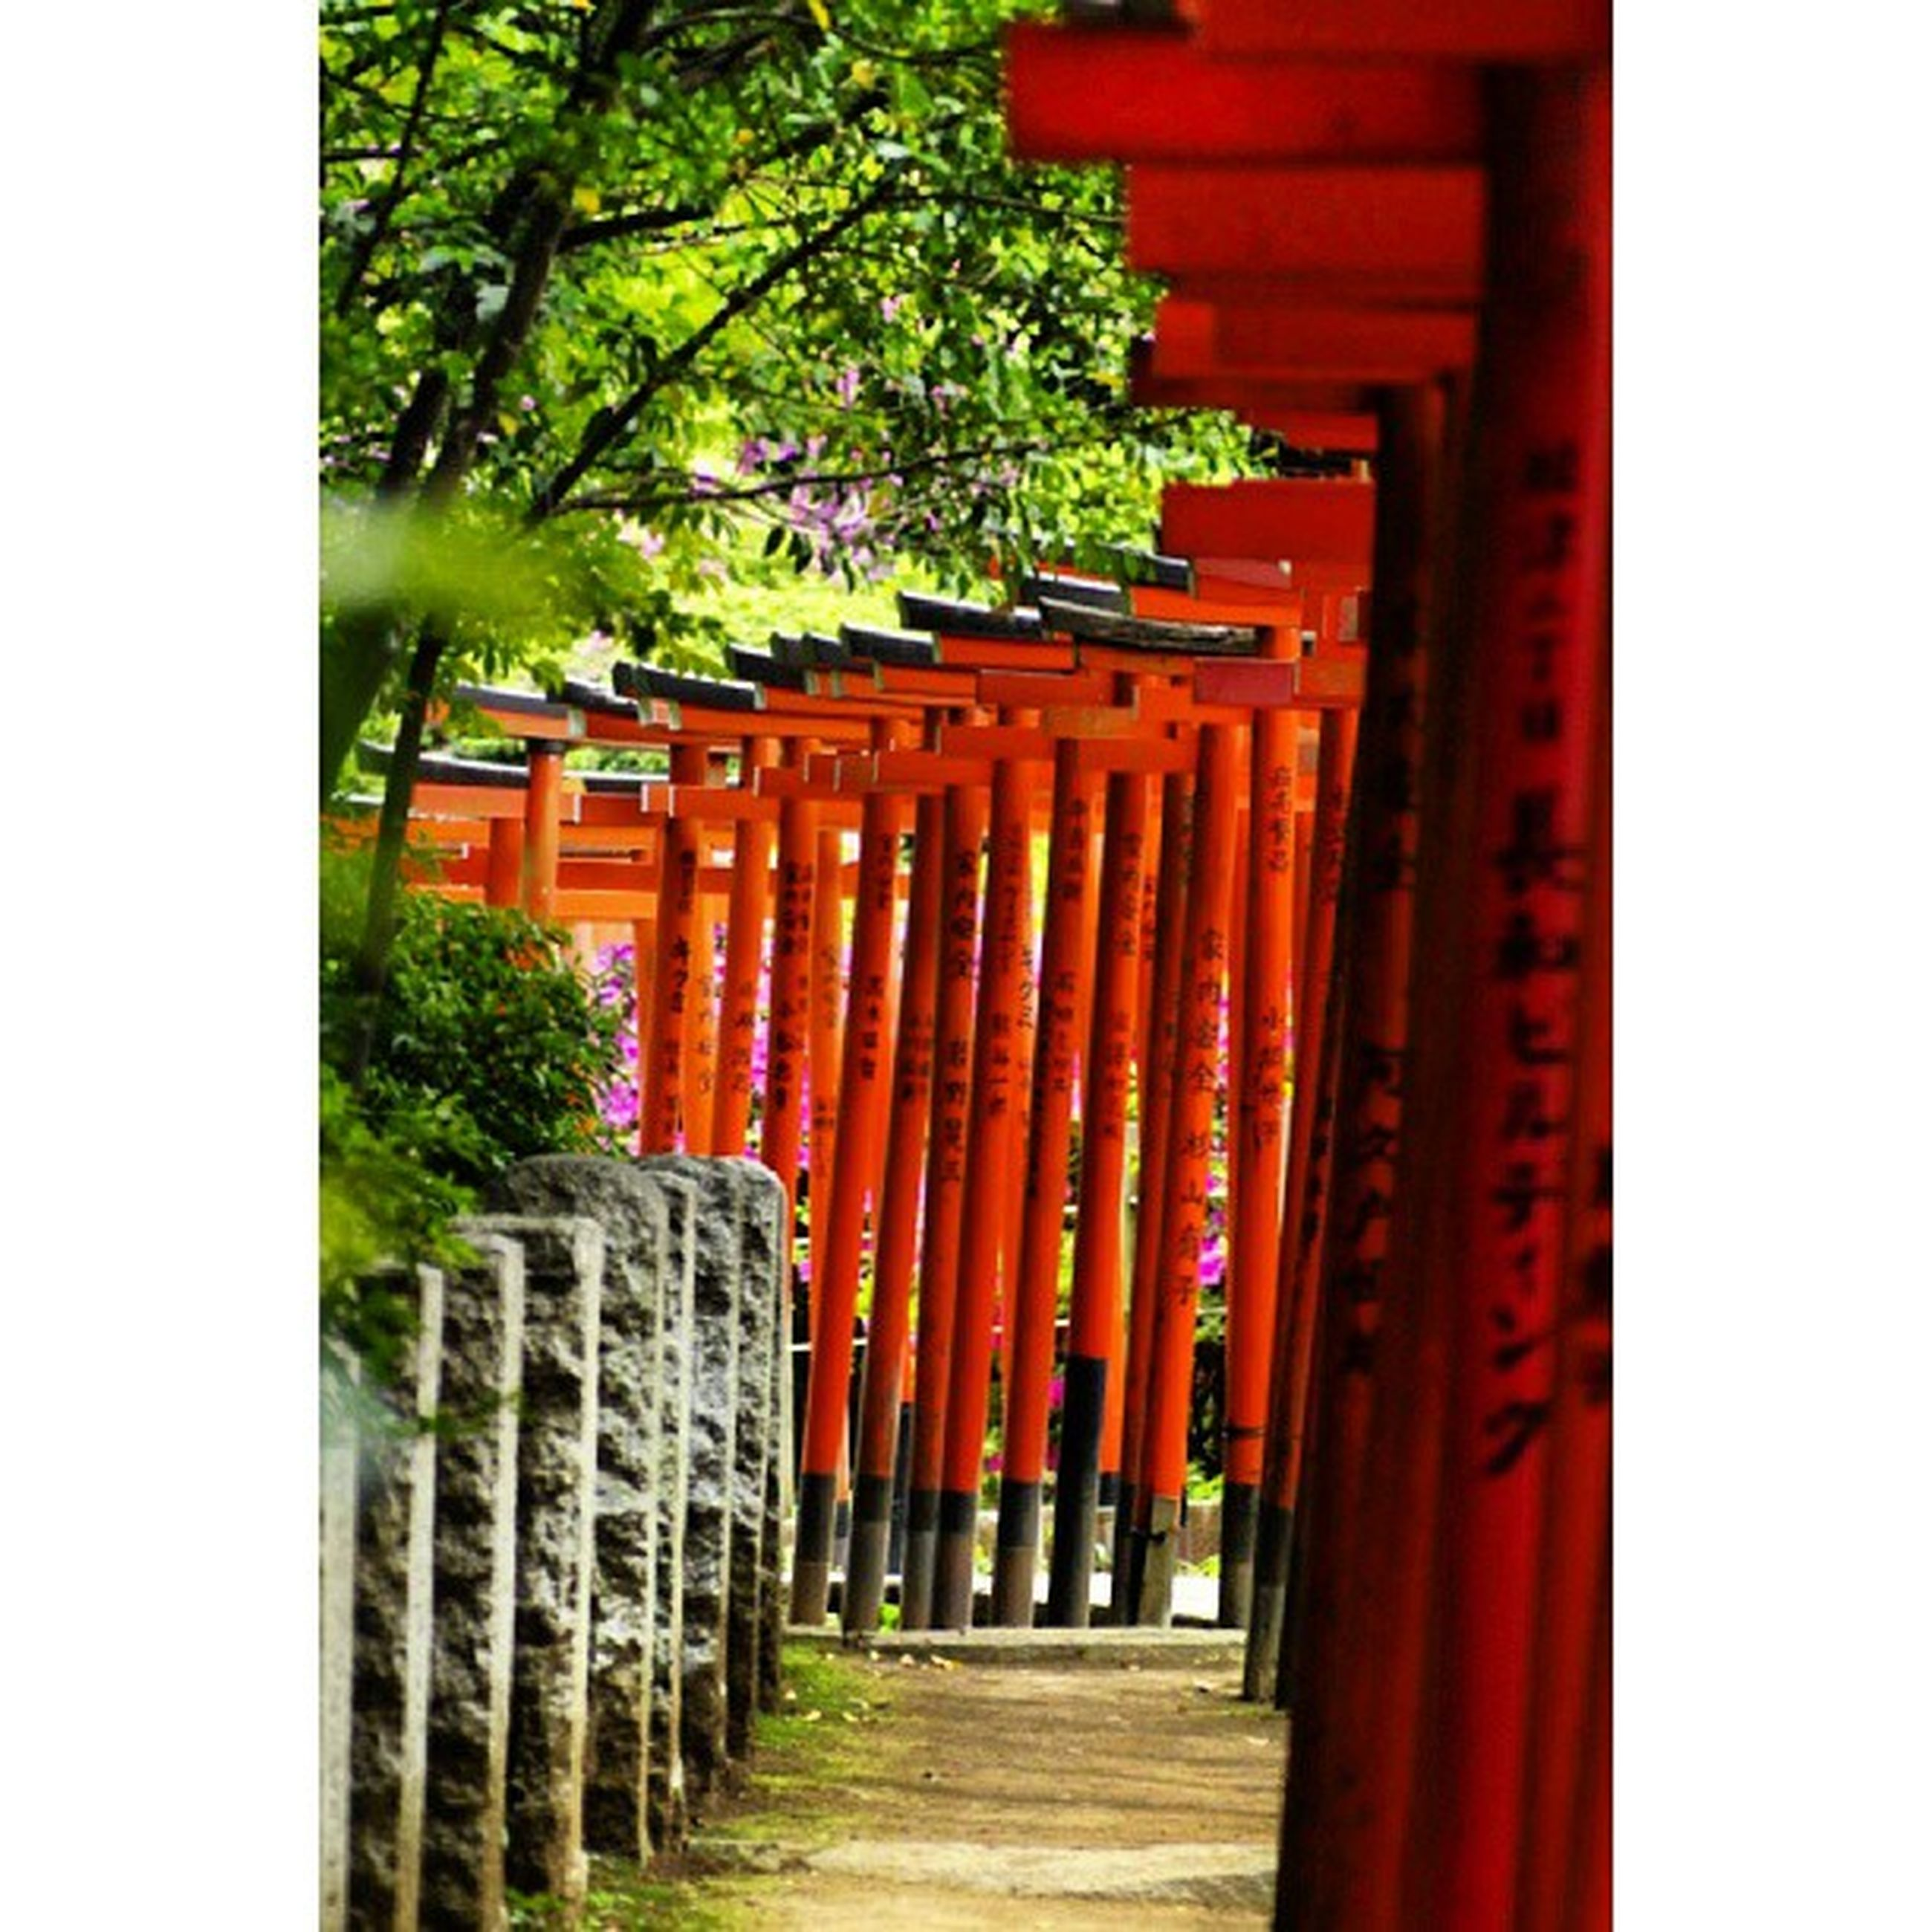 architecture, red, built structure, building exterior, tree, in a row, the way forward, entrance, architectural column, column, gate, day, outdoors, temple - building, cultures, diminishing perspective, auto post production filter, no people, religion, steps